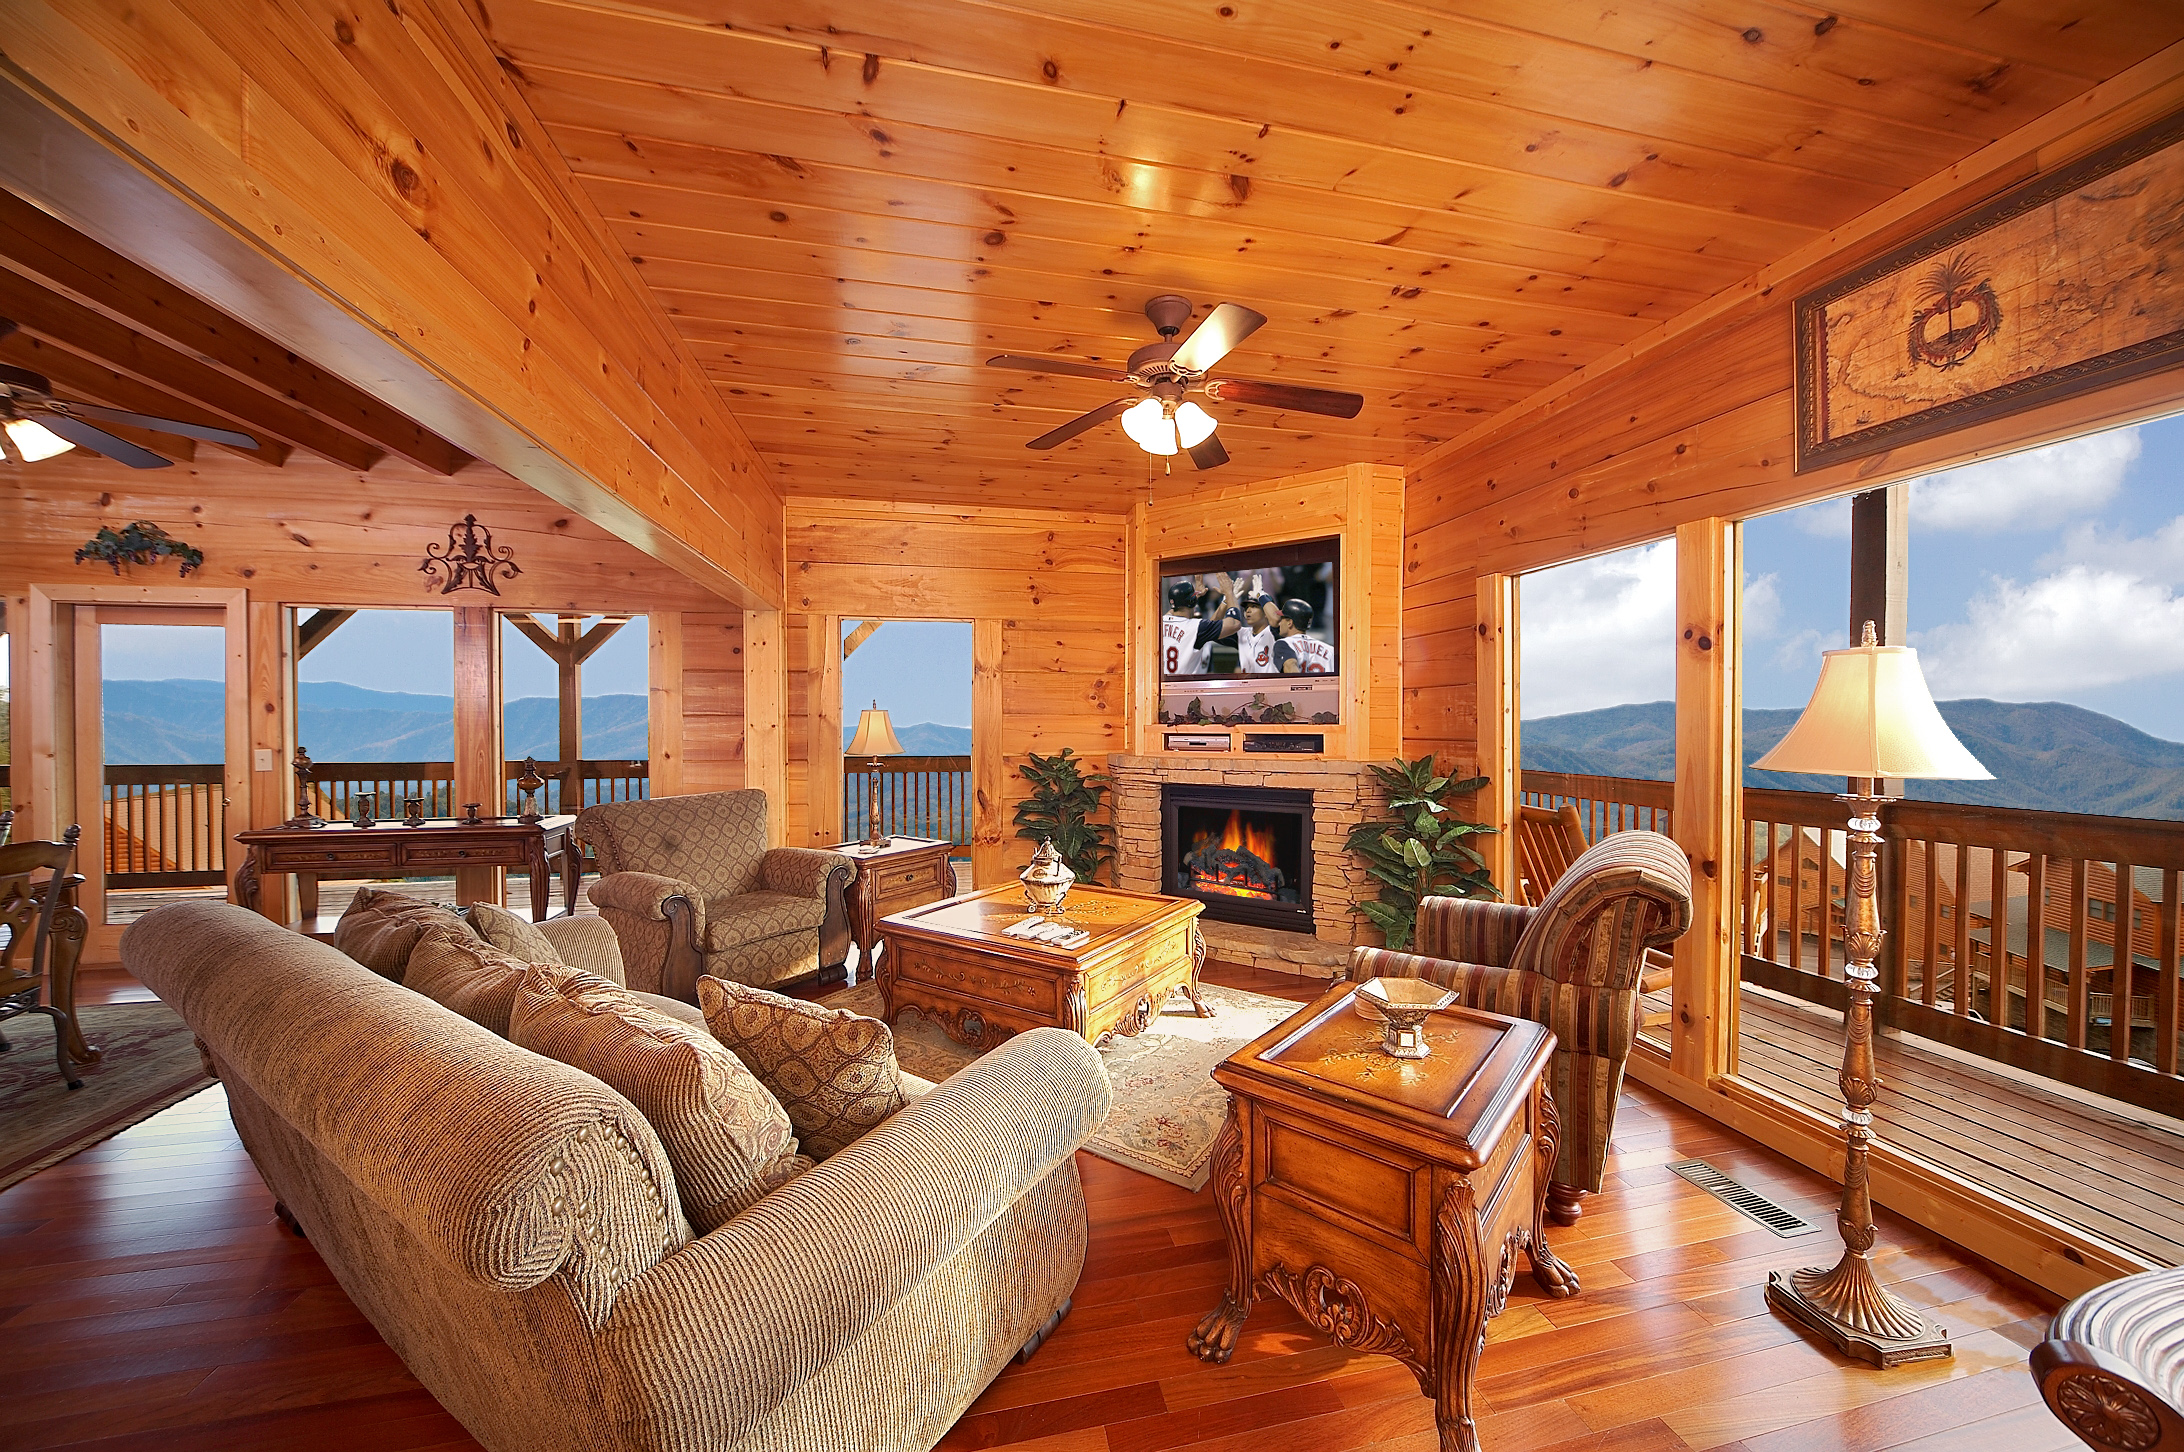 Luxury cabin rentals in the smoky mountains for Cabin rentals near smoky mountains